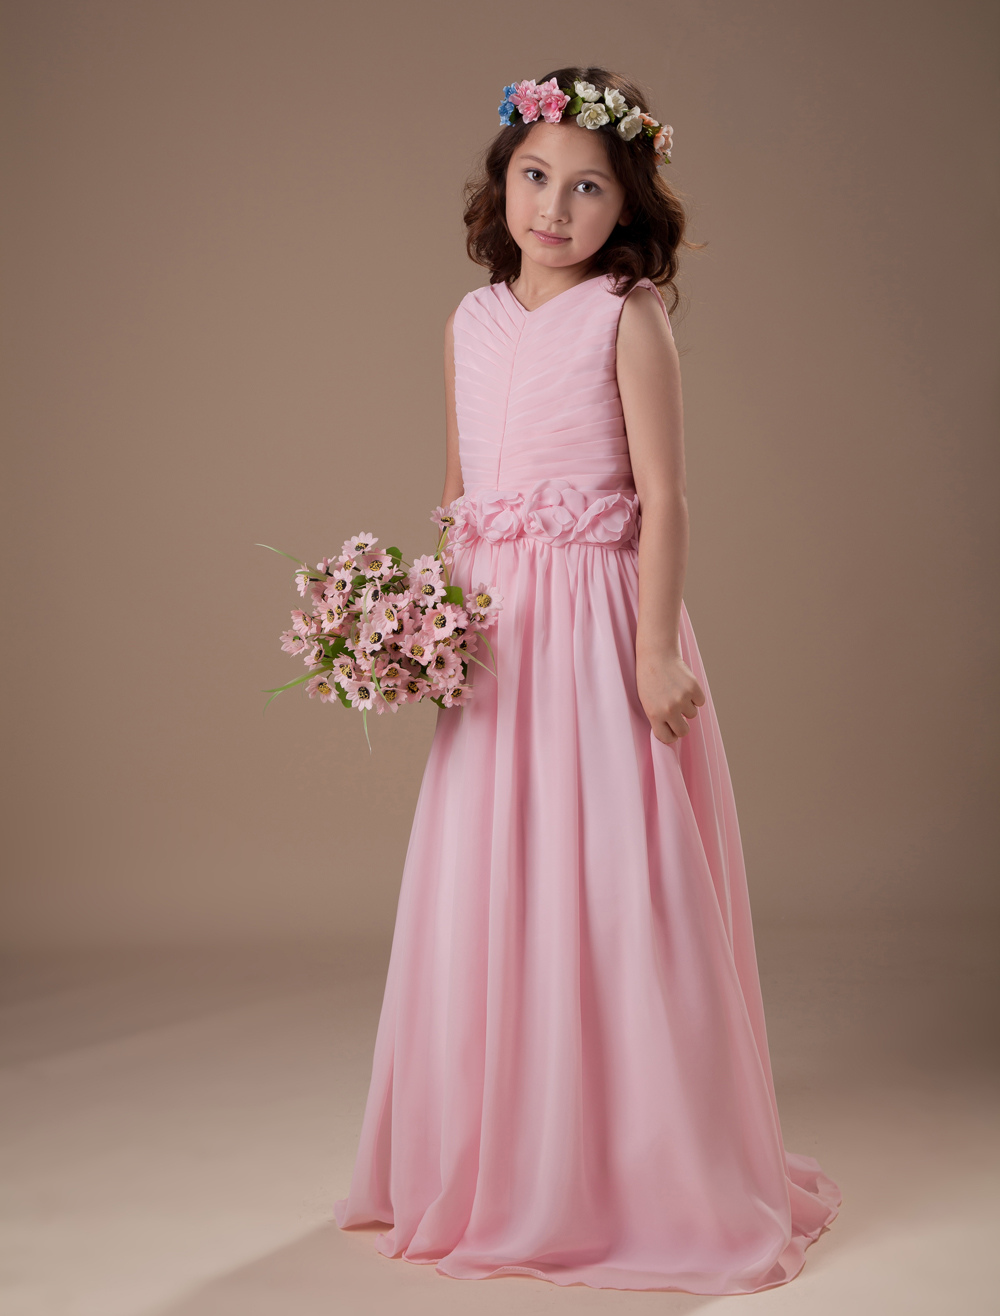 Beautiful pink sleeveless v neck satin chiffon flower girl dress beautiful pink sleeveless v neck satin chiffon flower girl dress milanoo dhlflorist Gallery